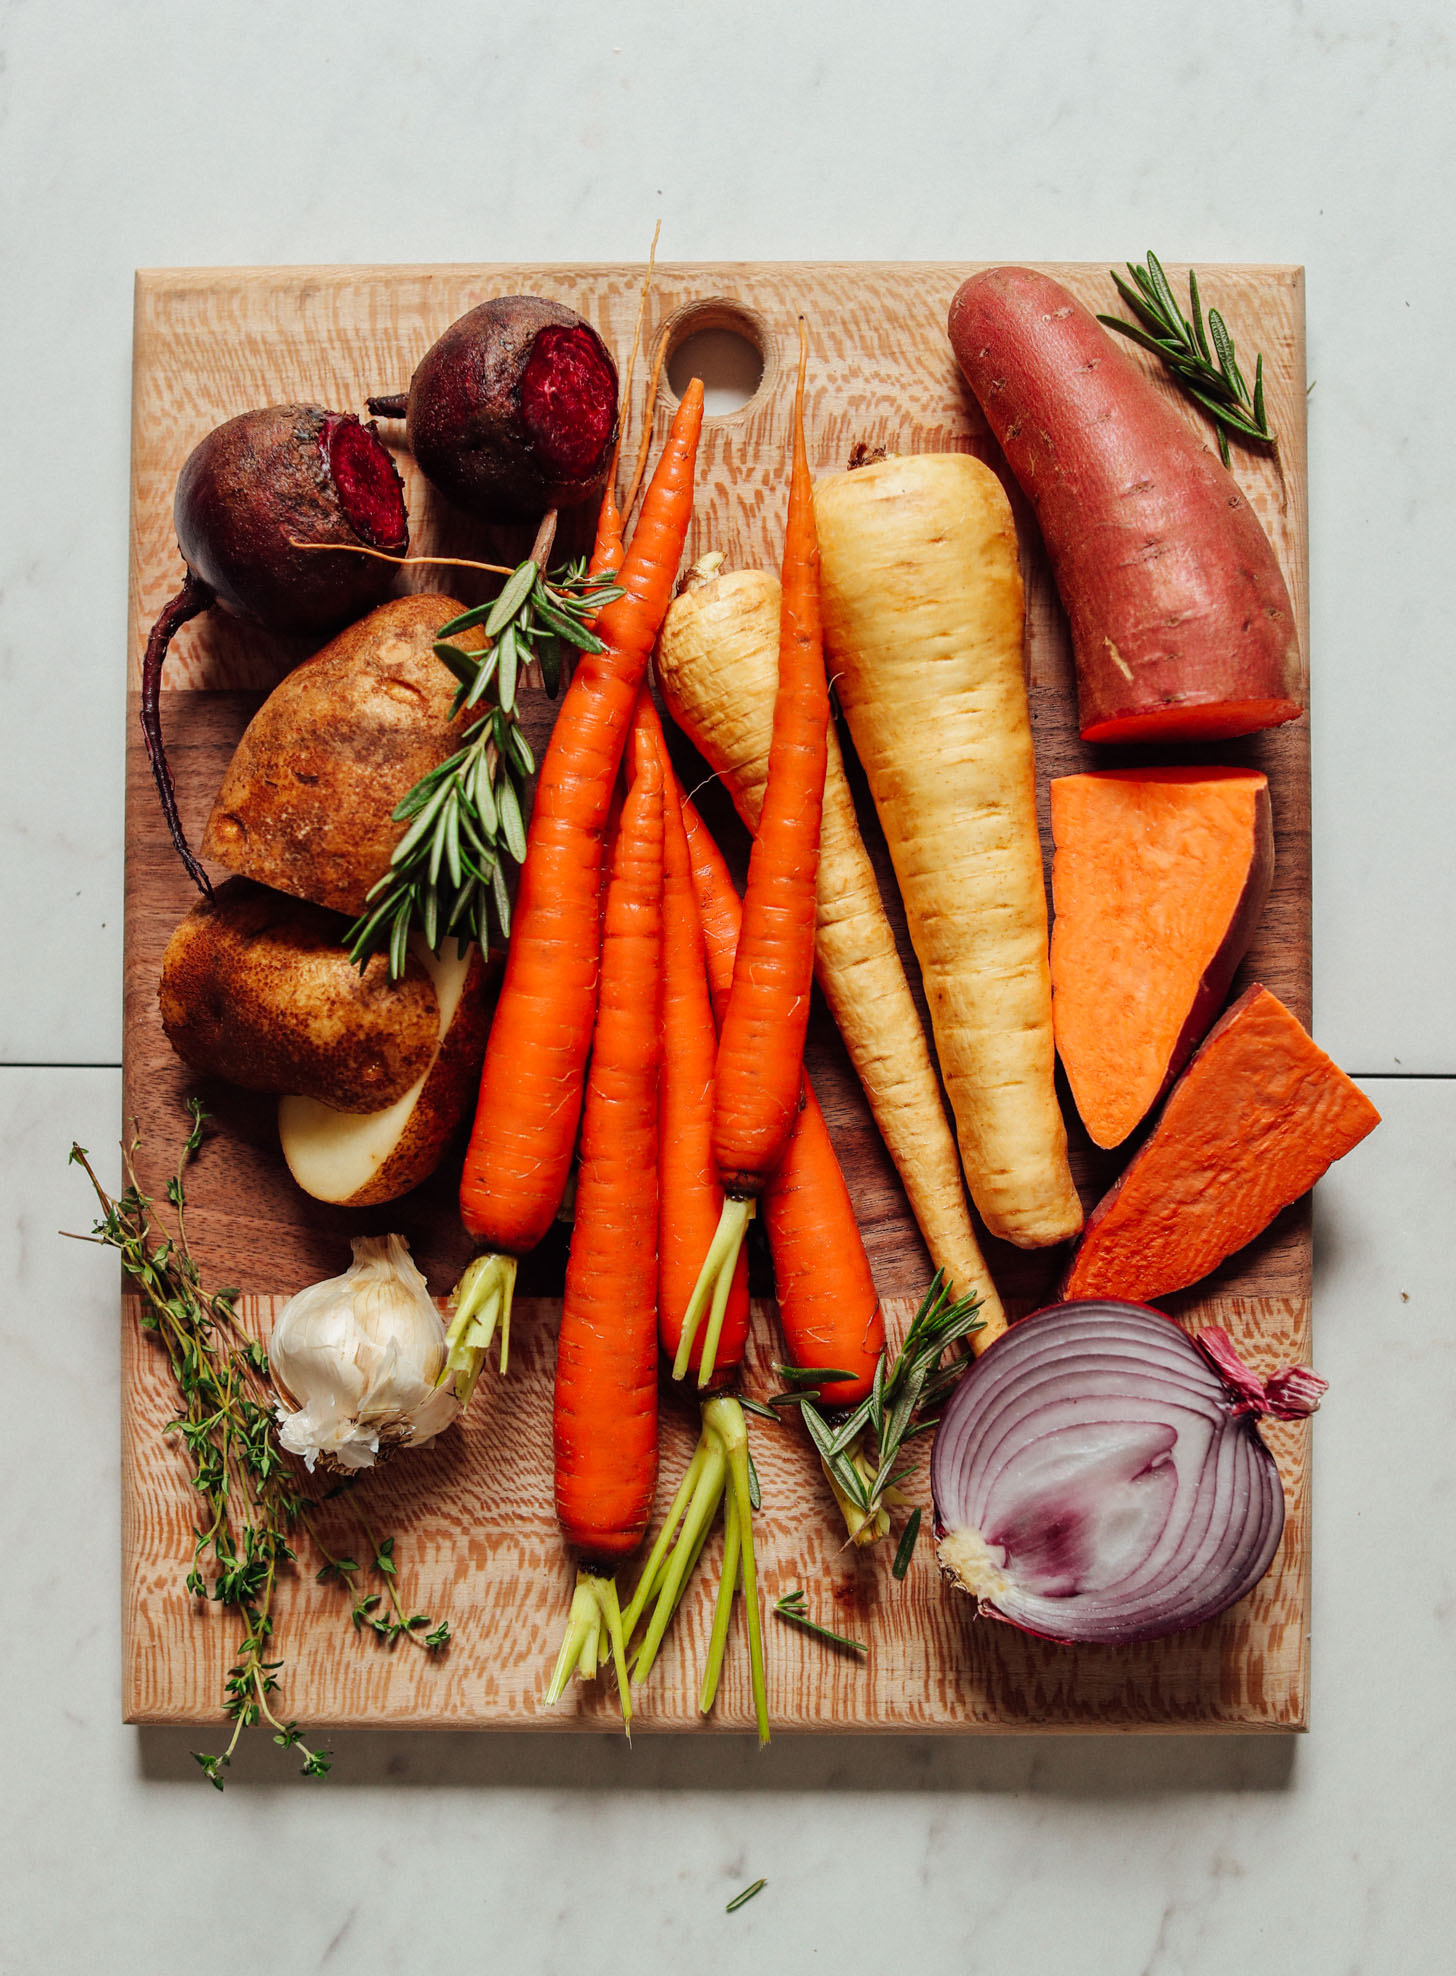 Wood cutting board filled with fresh beets, potatoes, parsnips, carrots, onions, garlic, and herbs for roasting